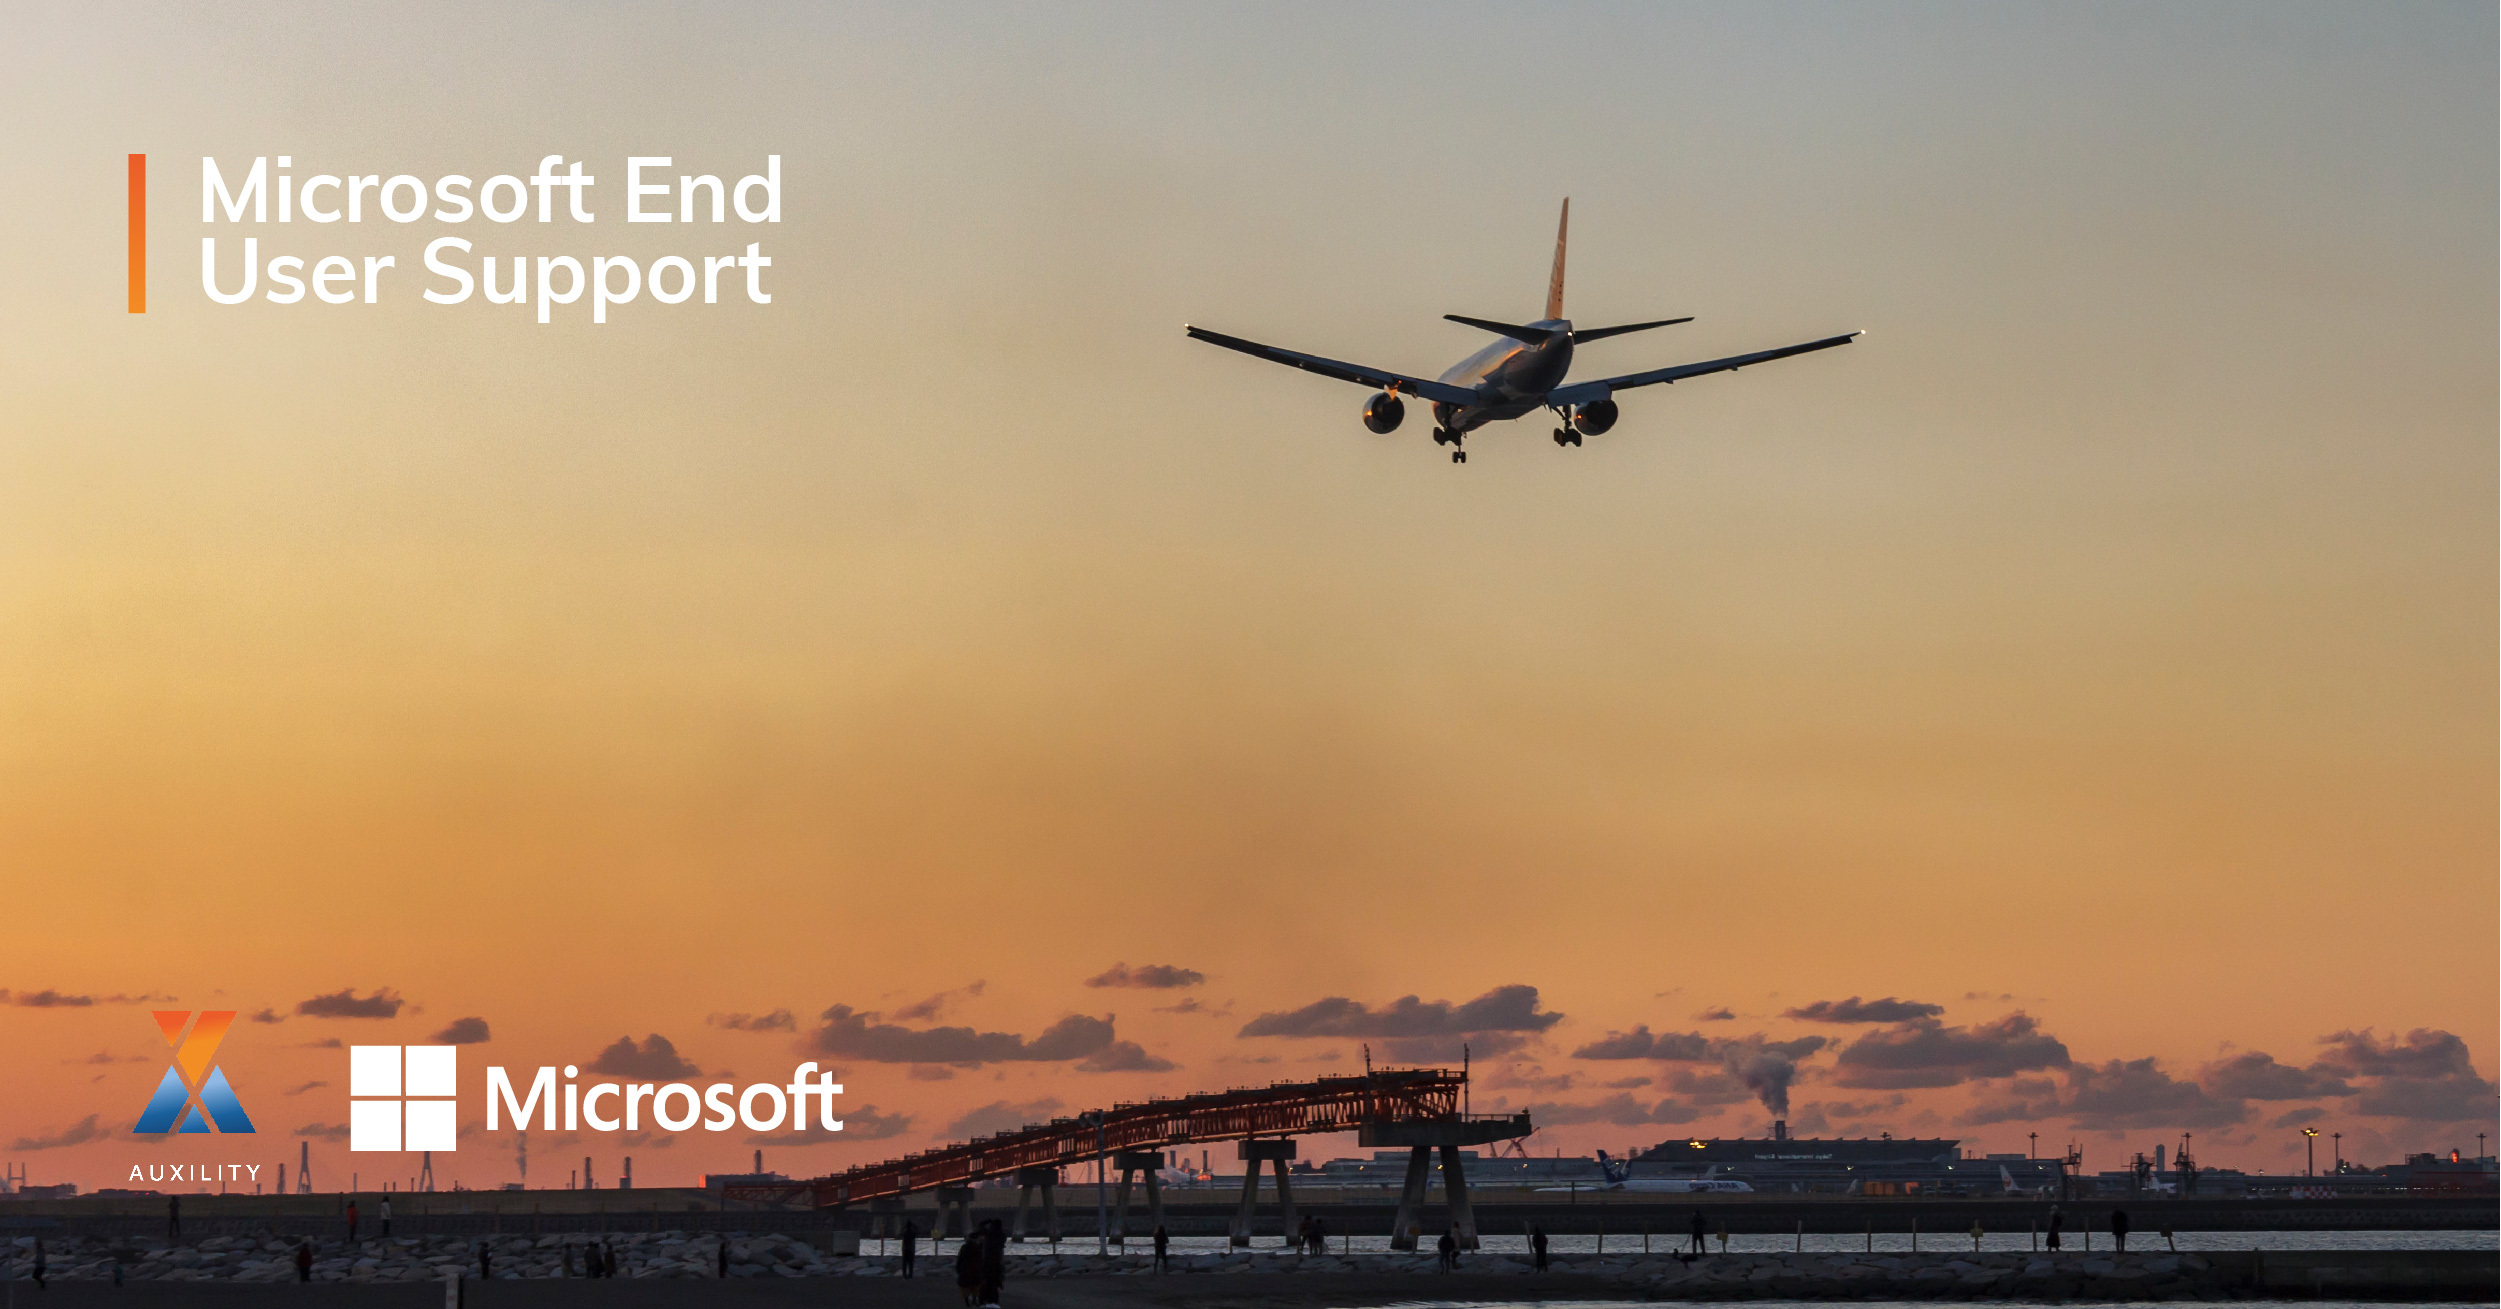 Microsoft End User Support